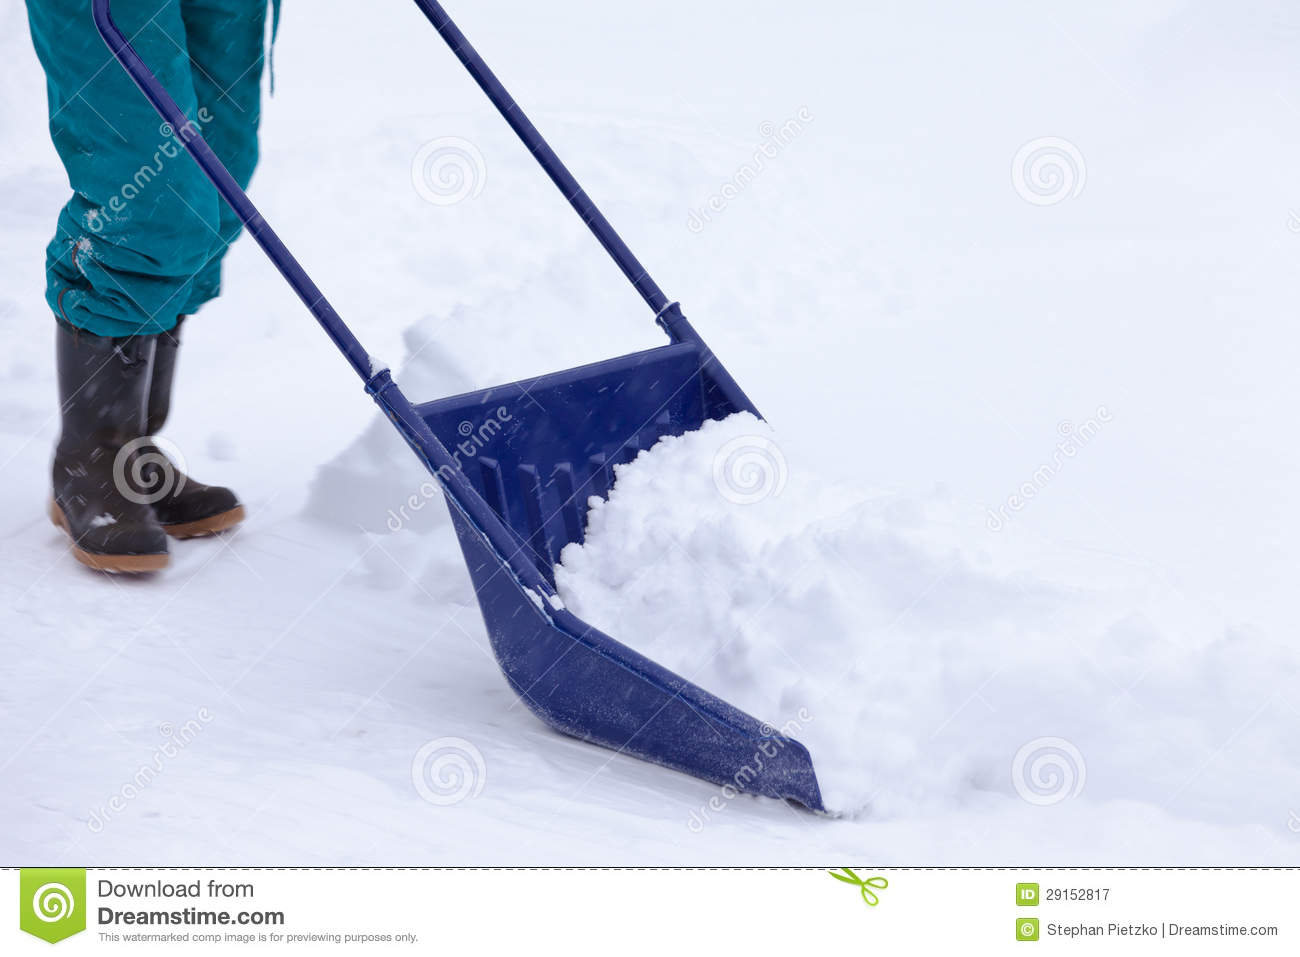 Snow Plow Prices >> Manual Snow Removal With Snow Scoop After Blizzard Royalty Free Stock Photography - Image: 29152817